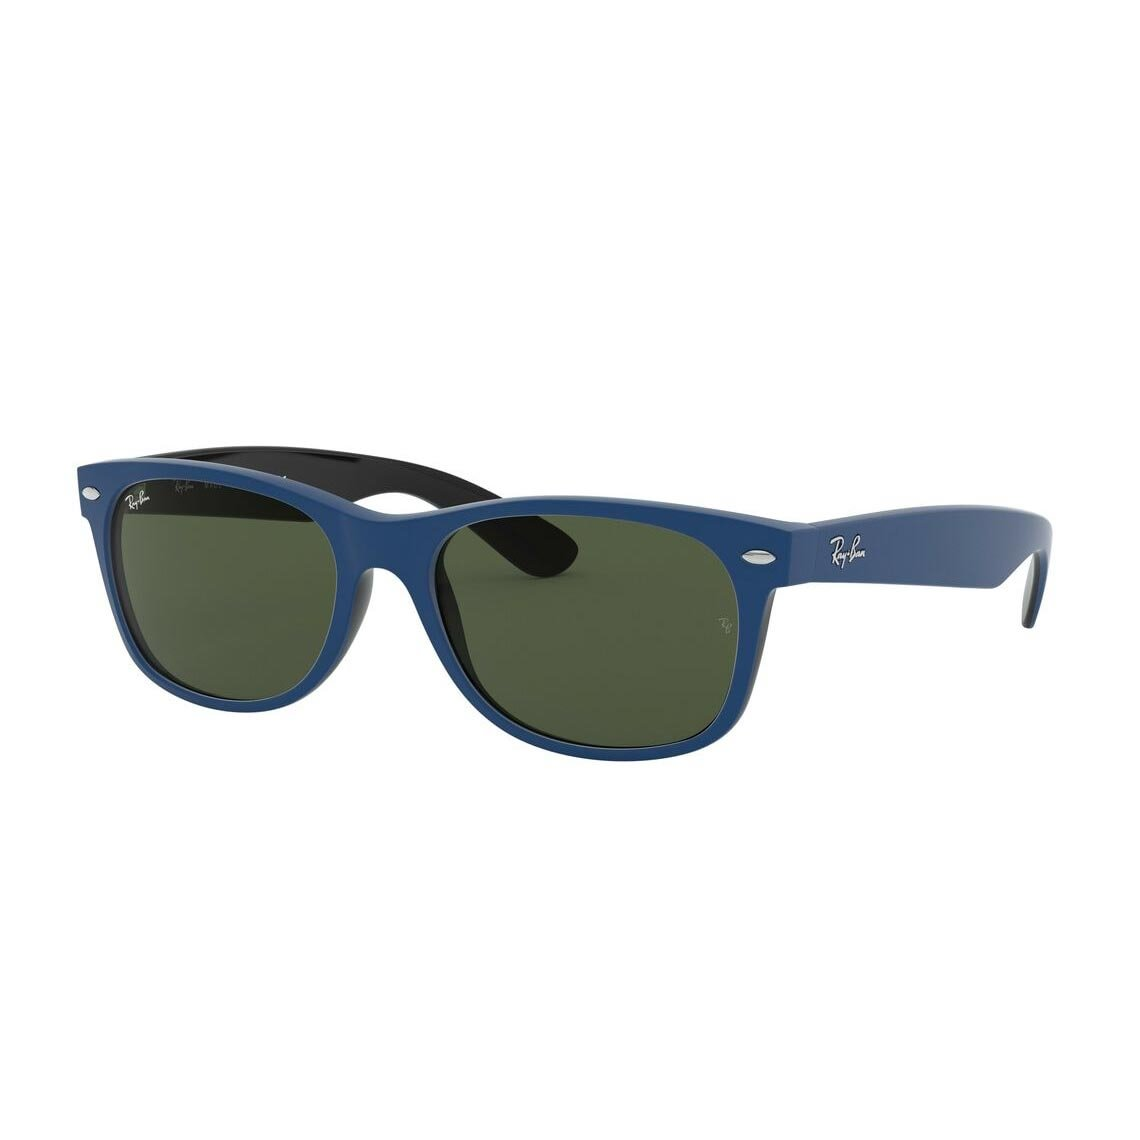 Ray-Ban New Wayfarer RB2132 646331 5818